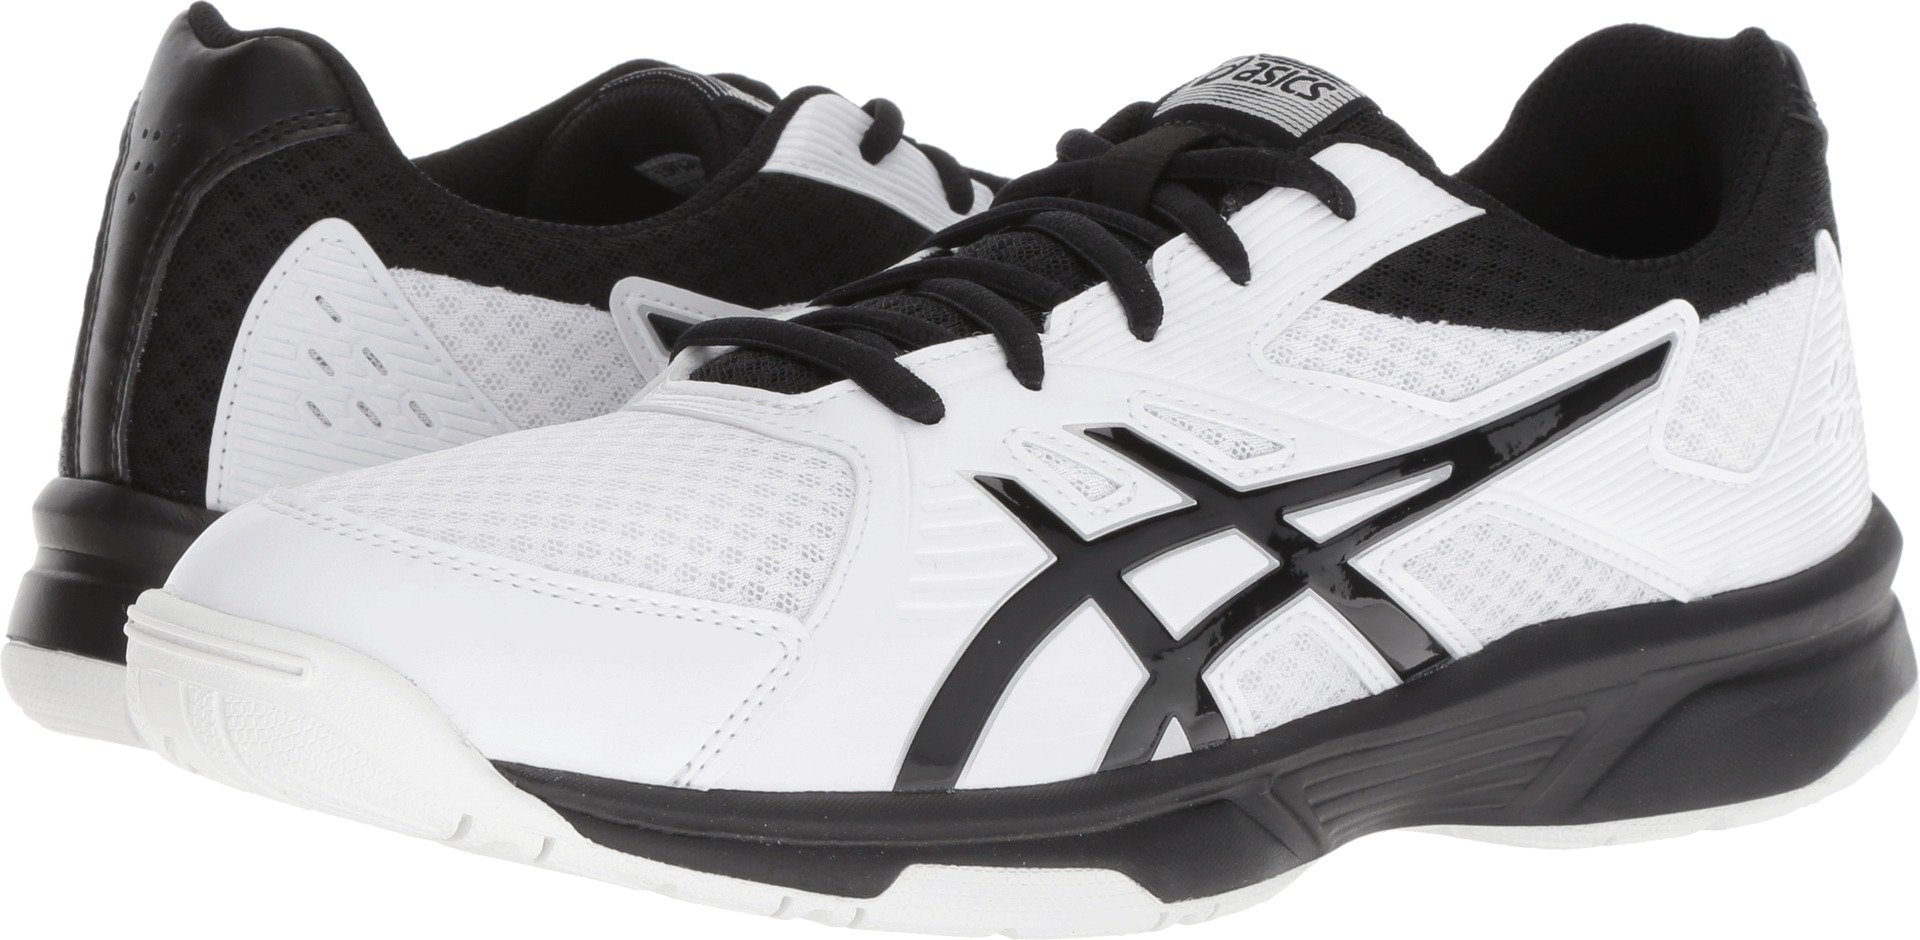 ASICS Men's Upcourt 3 Volleyball Shoes, White/Black, Size 10.5 by ASICS